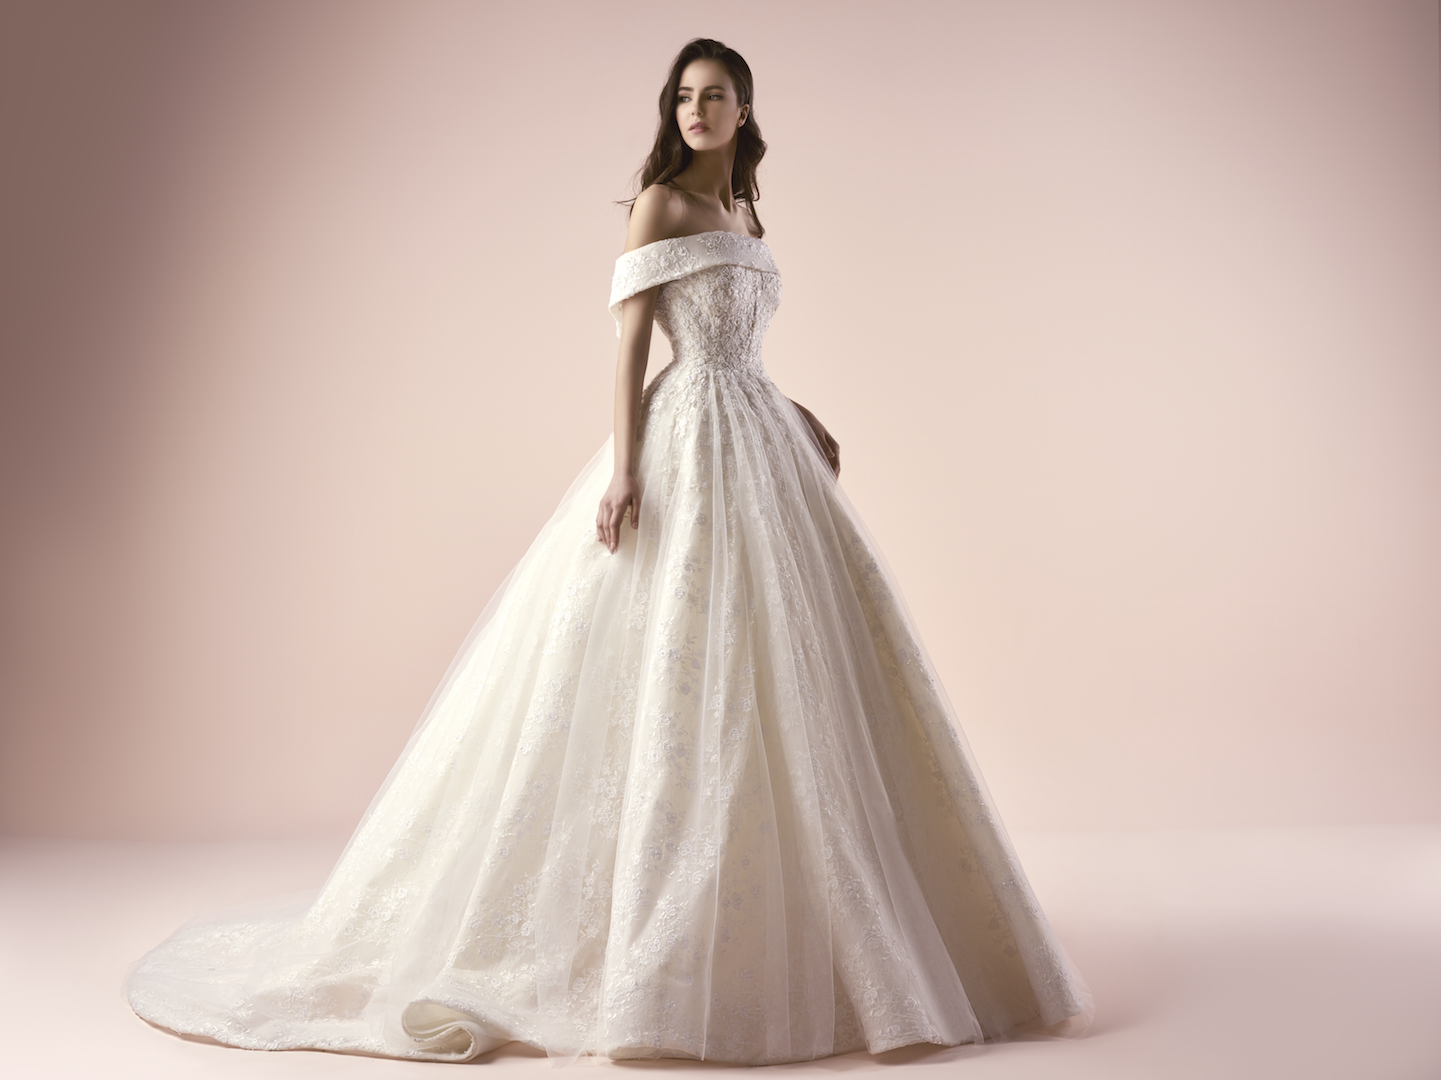 Classic Wedding Dresses 2018: Saiid Kobeisy's Bridal 2018 Collection Is All About